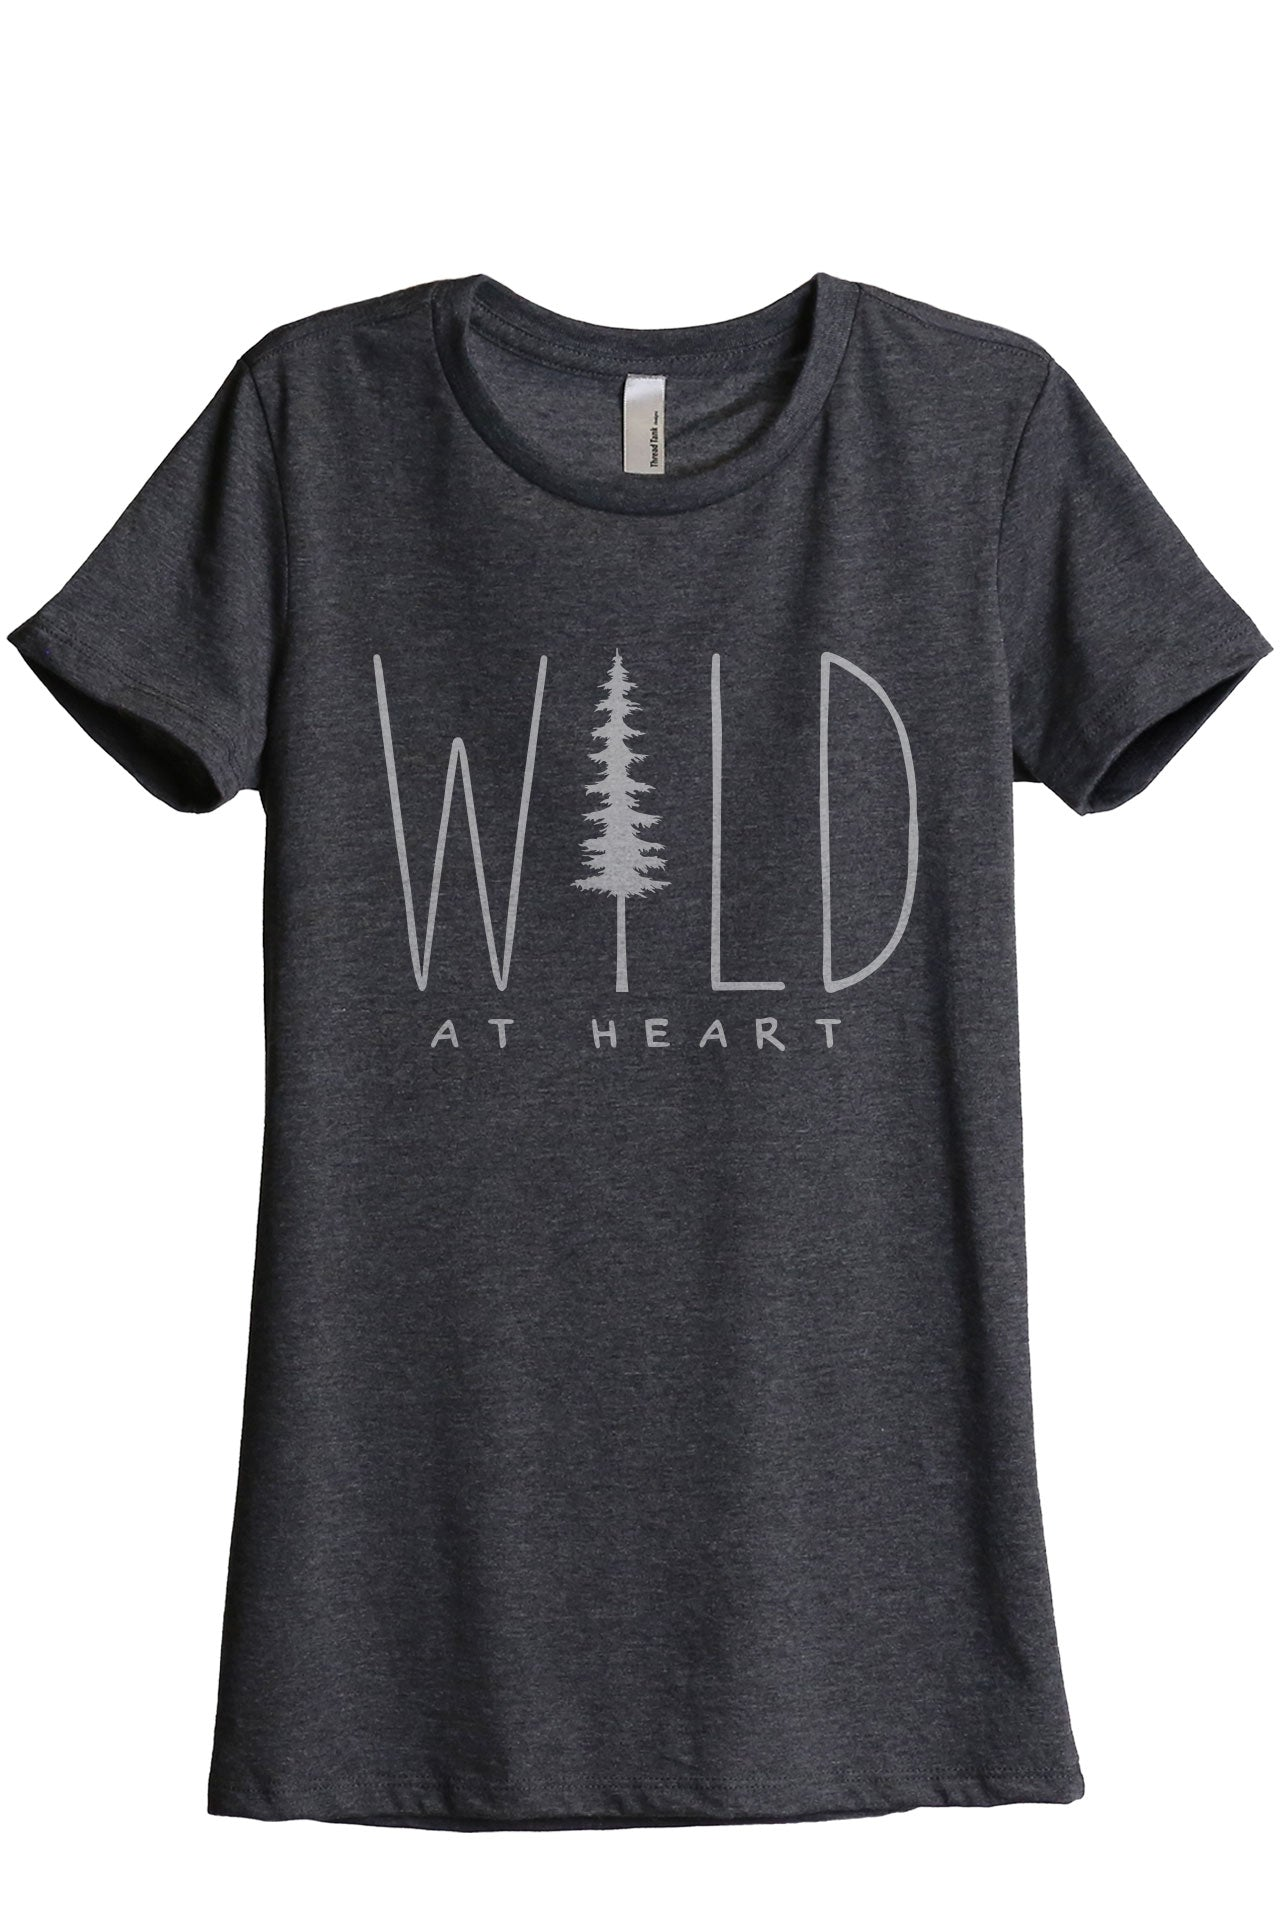 Wild At Heart Women's Relaxed Crewneck T-Shirt Top Tee Charcoal Grey